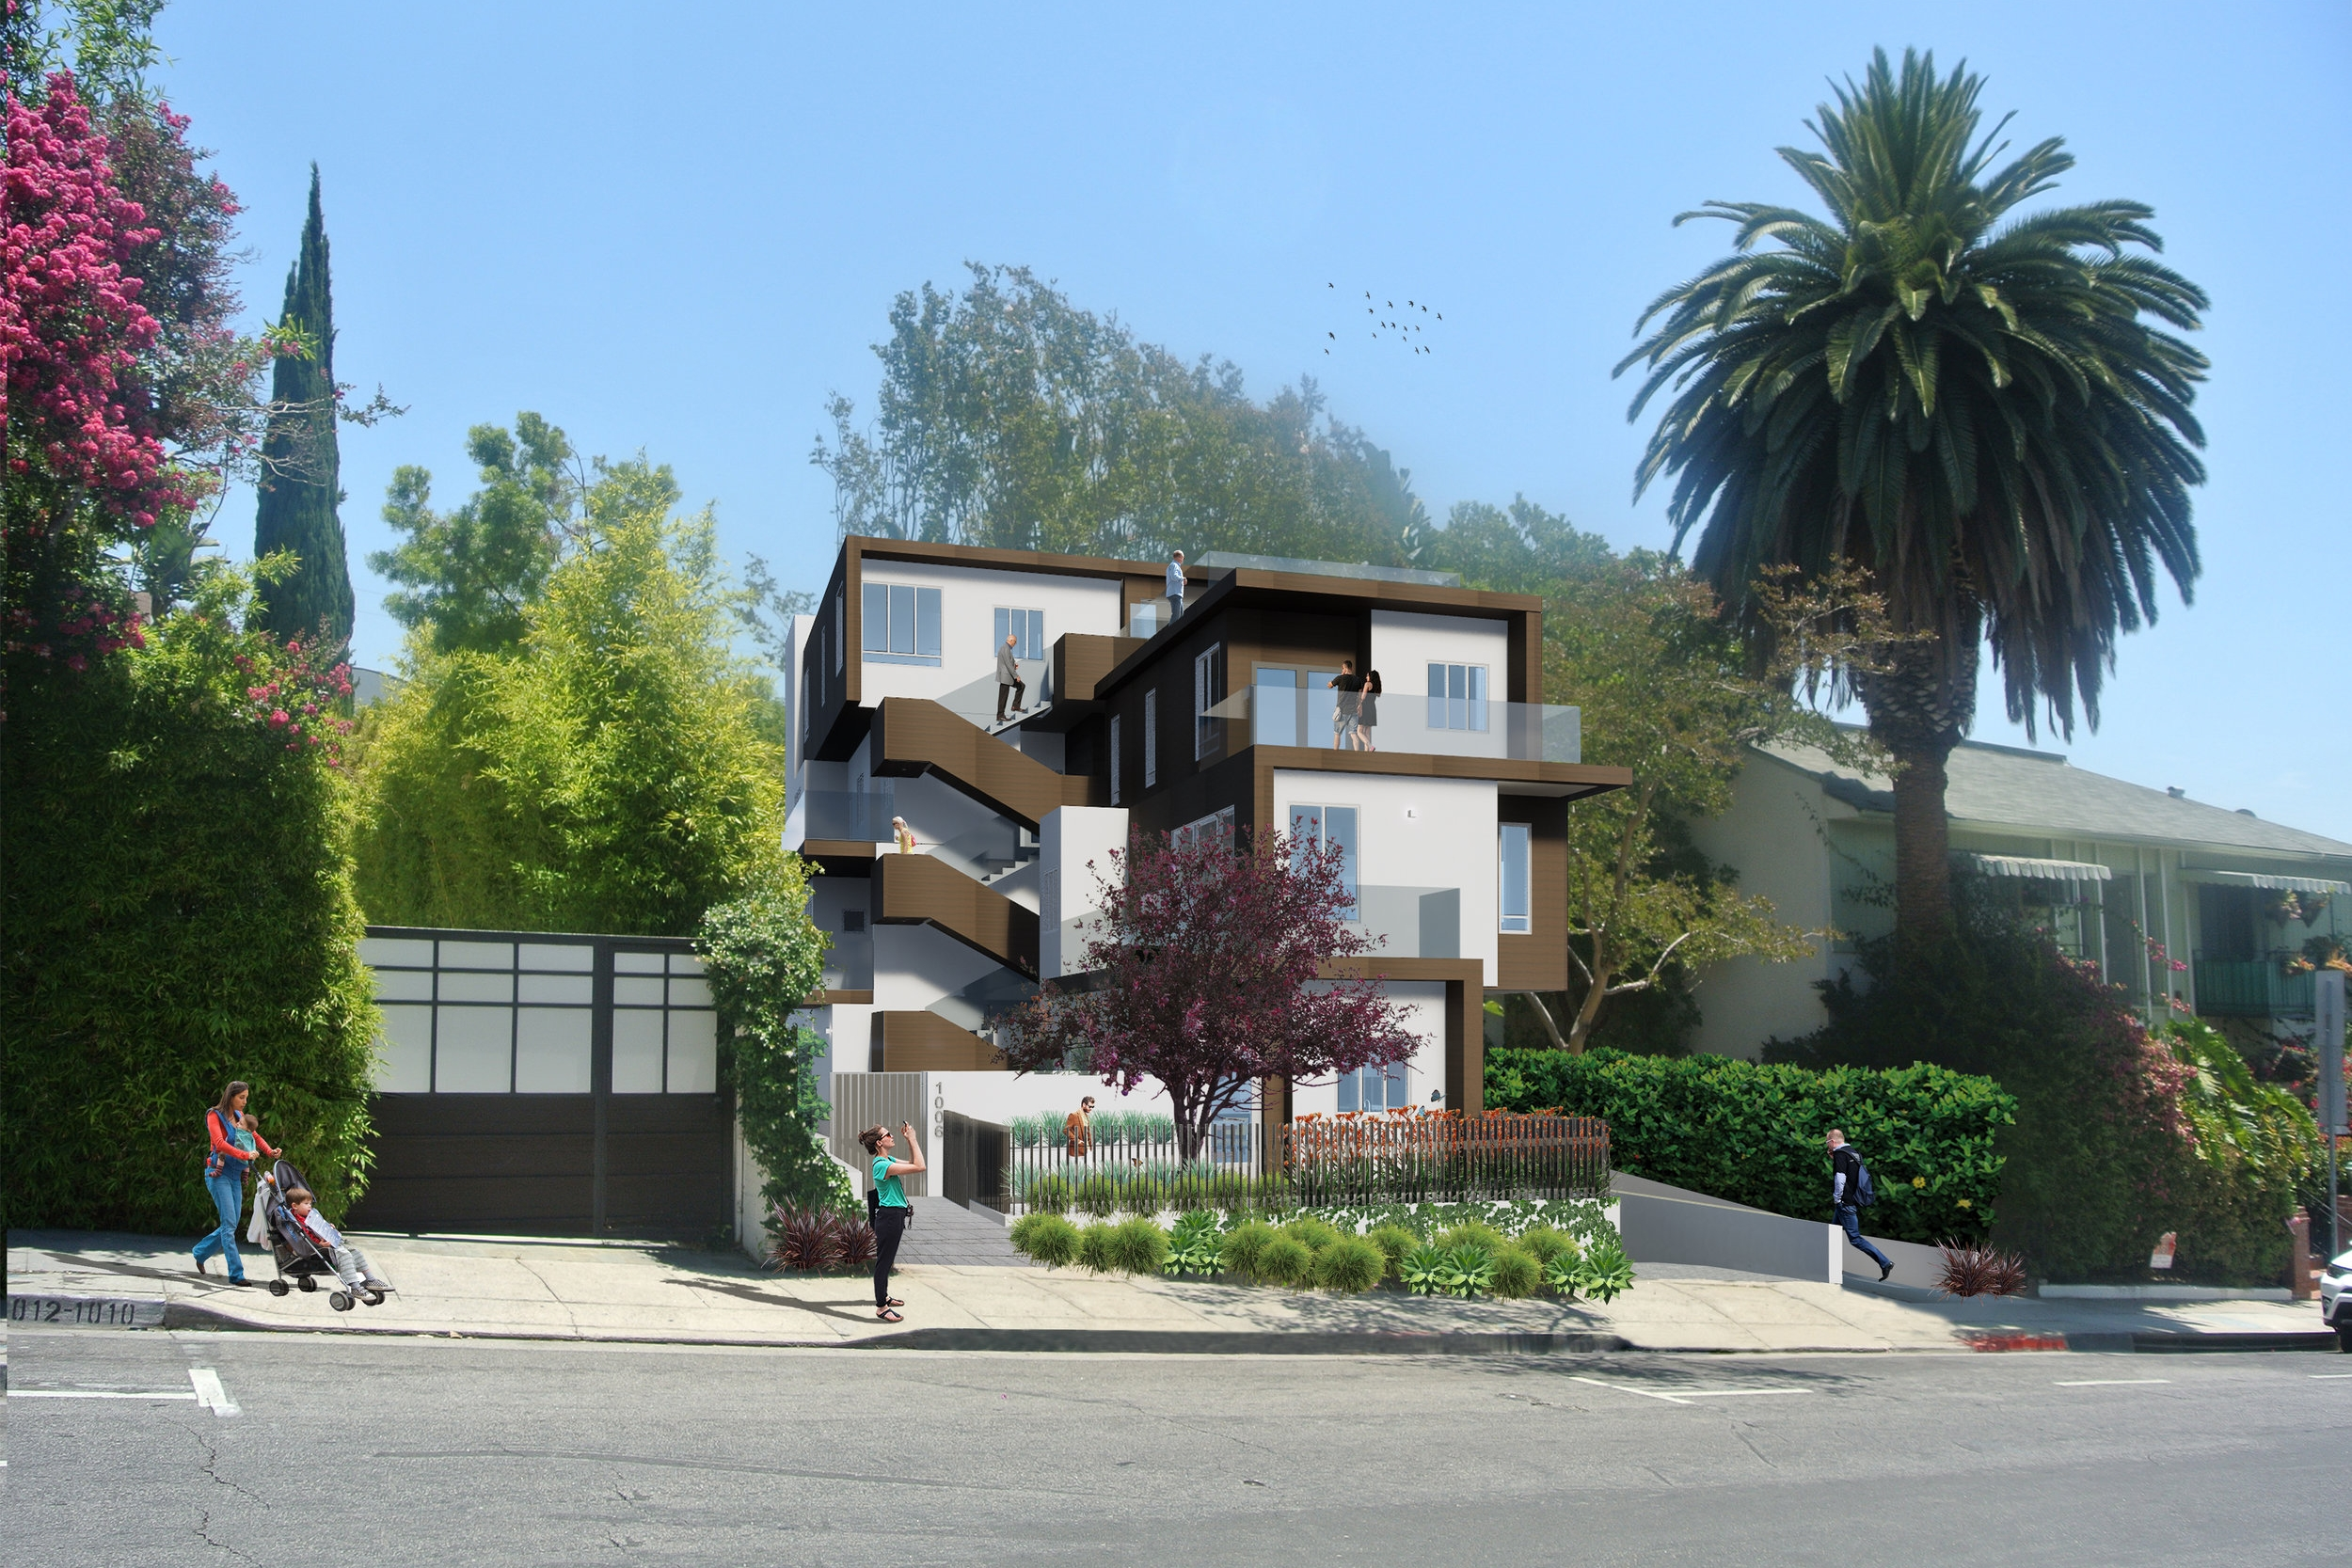 6 unit housing project in West Hollywood, Los Angeles.